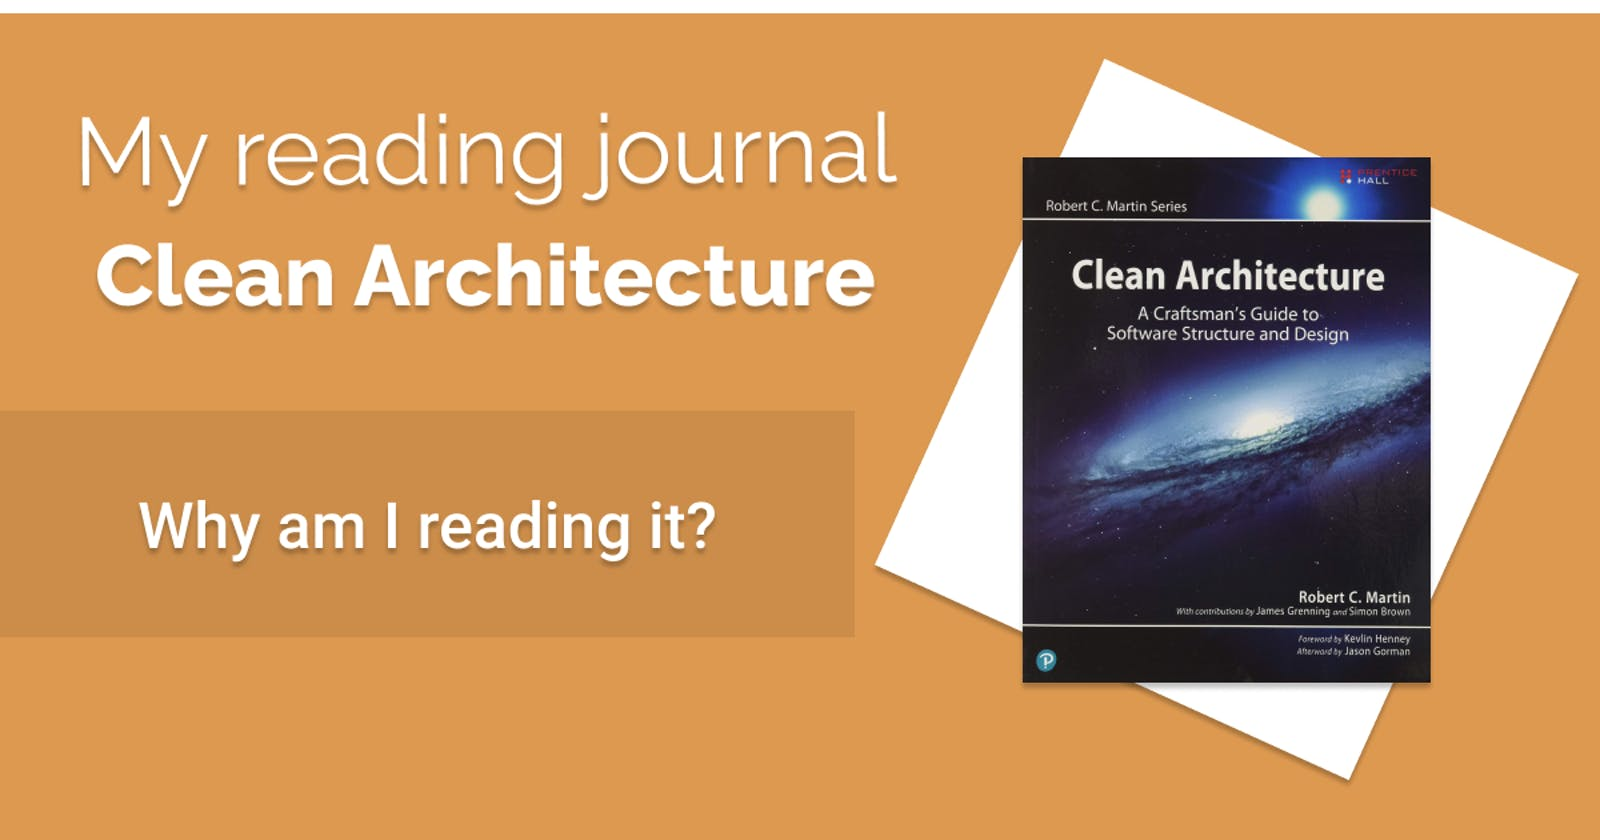 My reading journal: Clean Architecture - Why am I reading it?